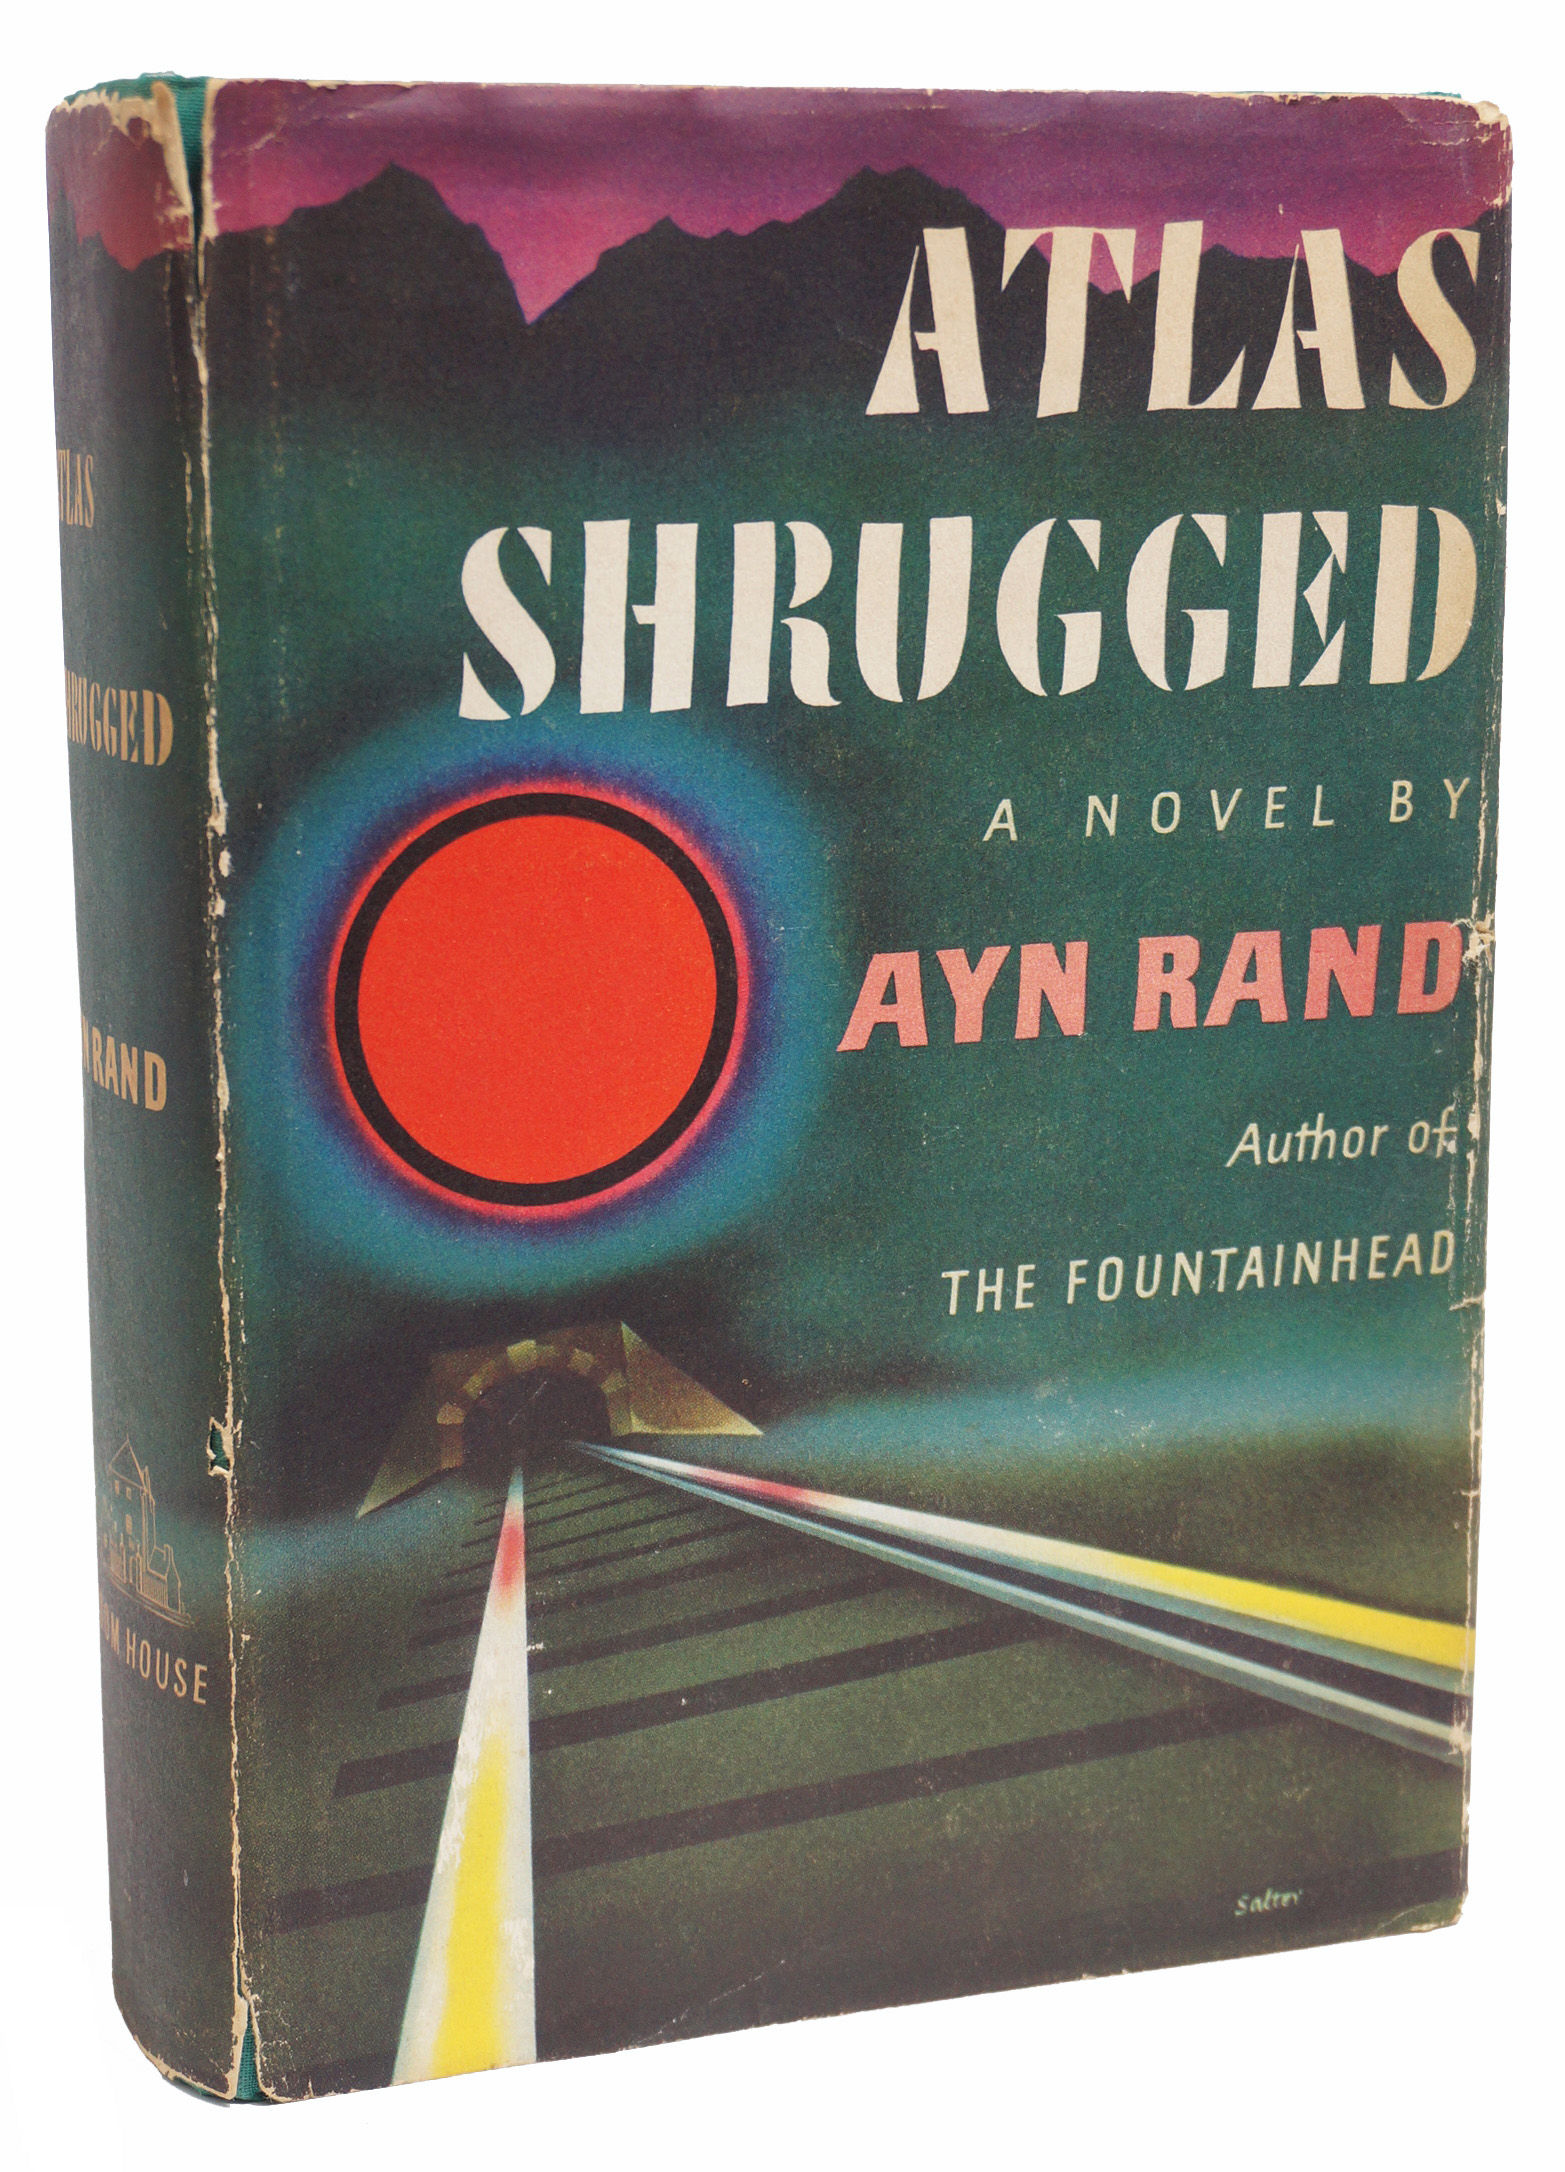 ayn rand atlas shrugged essays The guardian - back  the new age of ayn rand:  started giving each other copies of atlas shrugged in the 80s was that rand seemed to grant intellectual heft to.